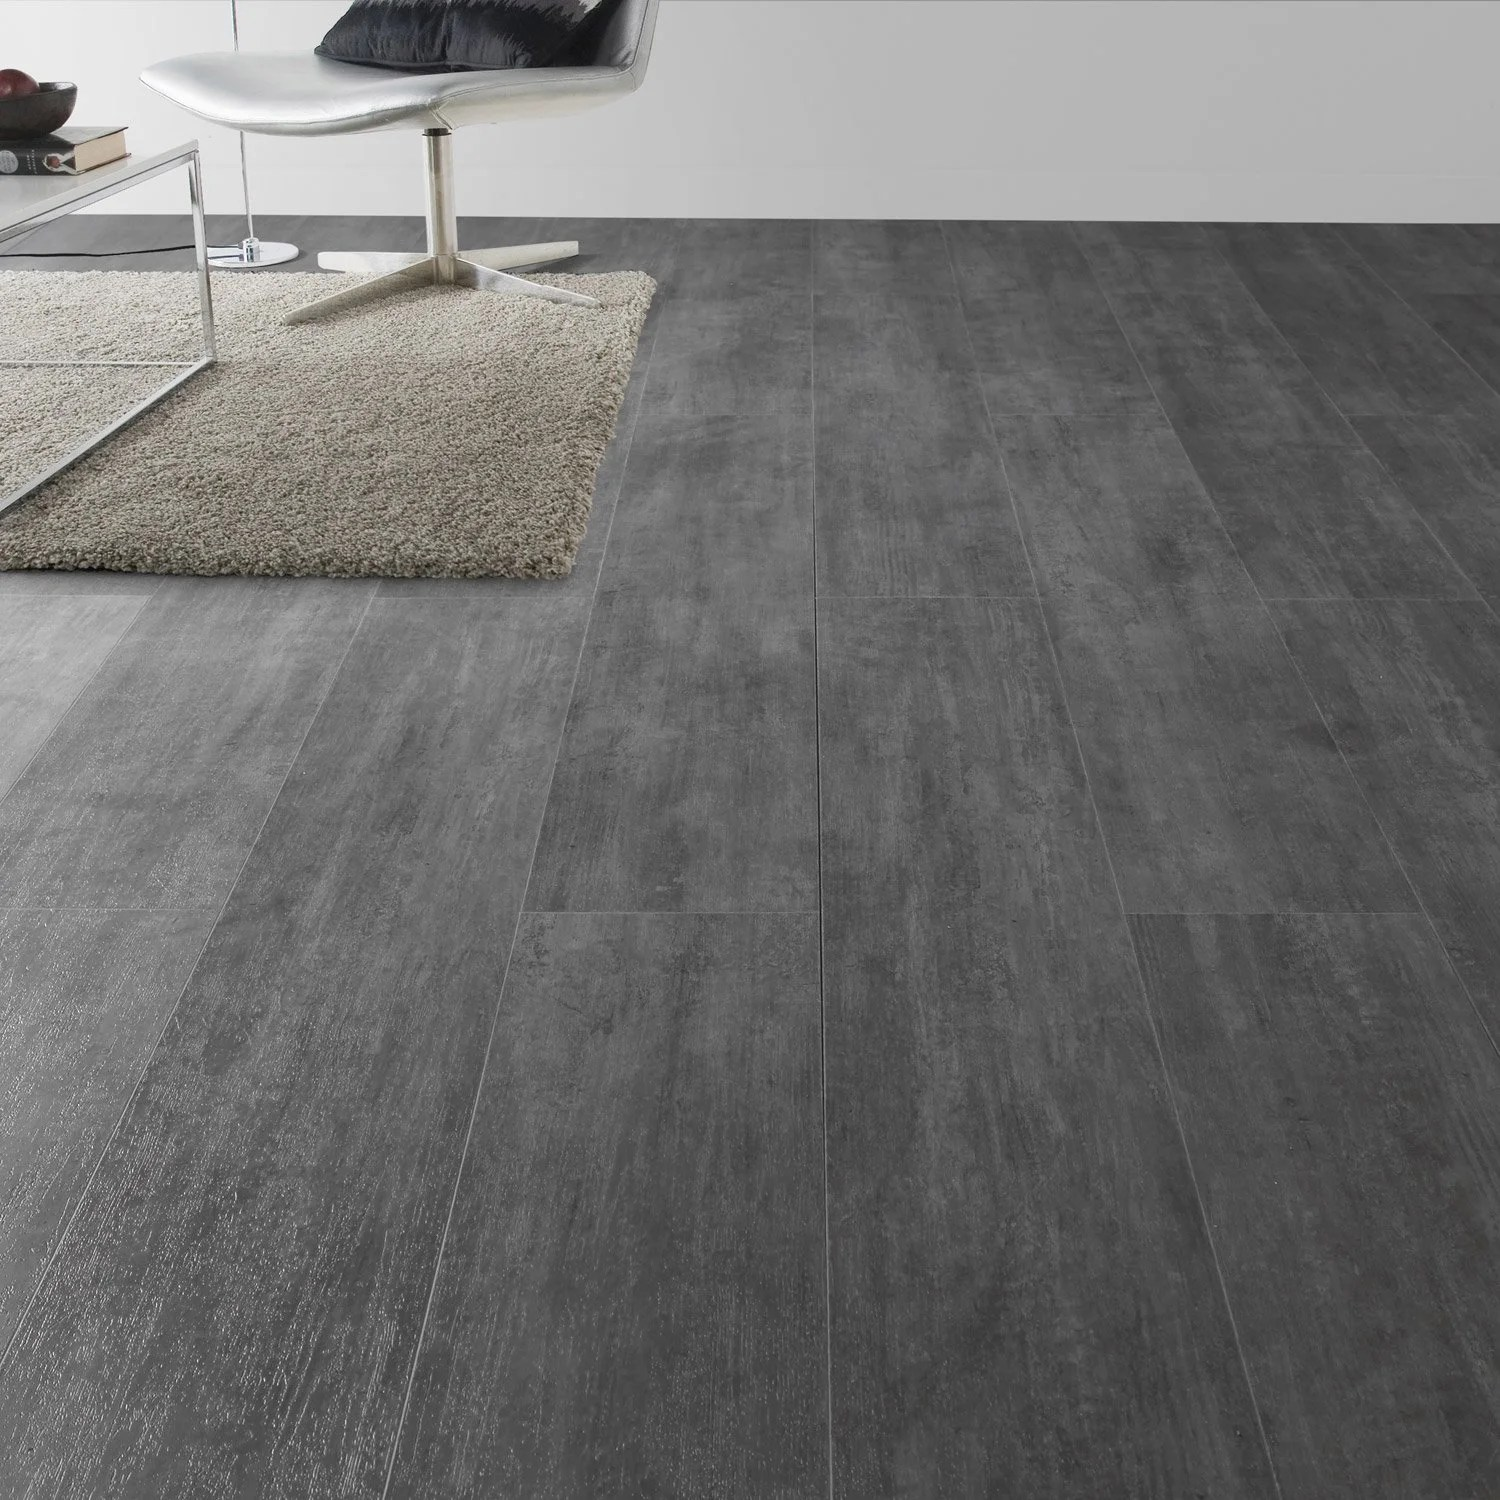 Dalle Lino Clipsable Lame Pvc Clipsable Gris Nolita Grey Senso Lock 43 Gerflor